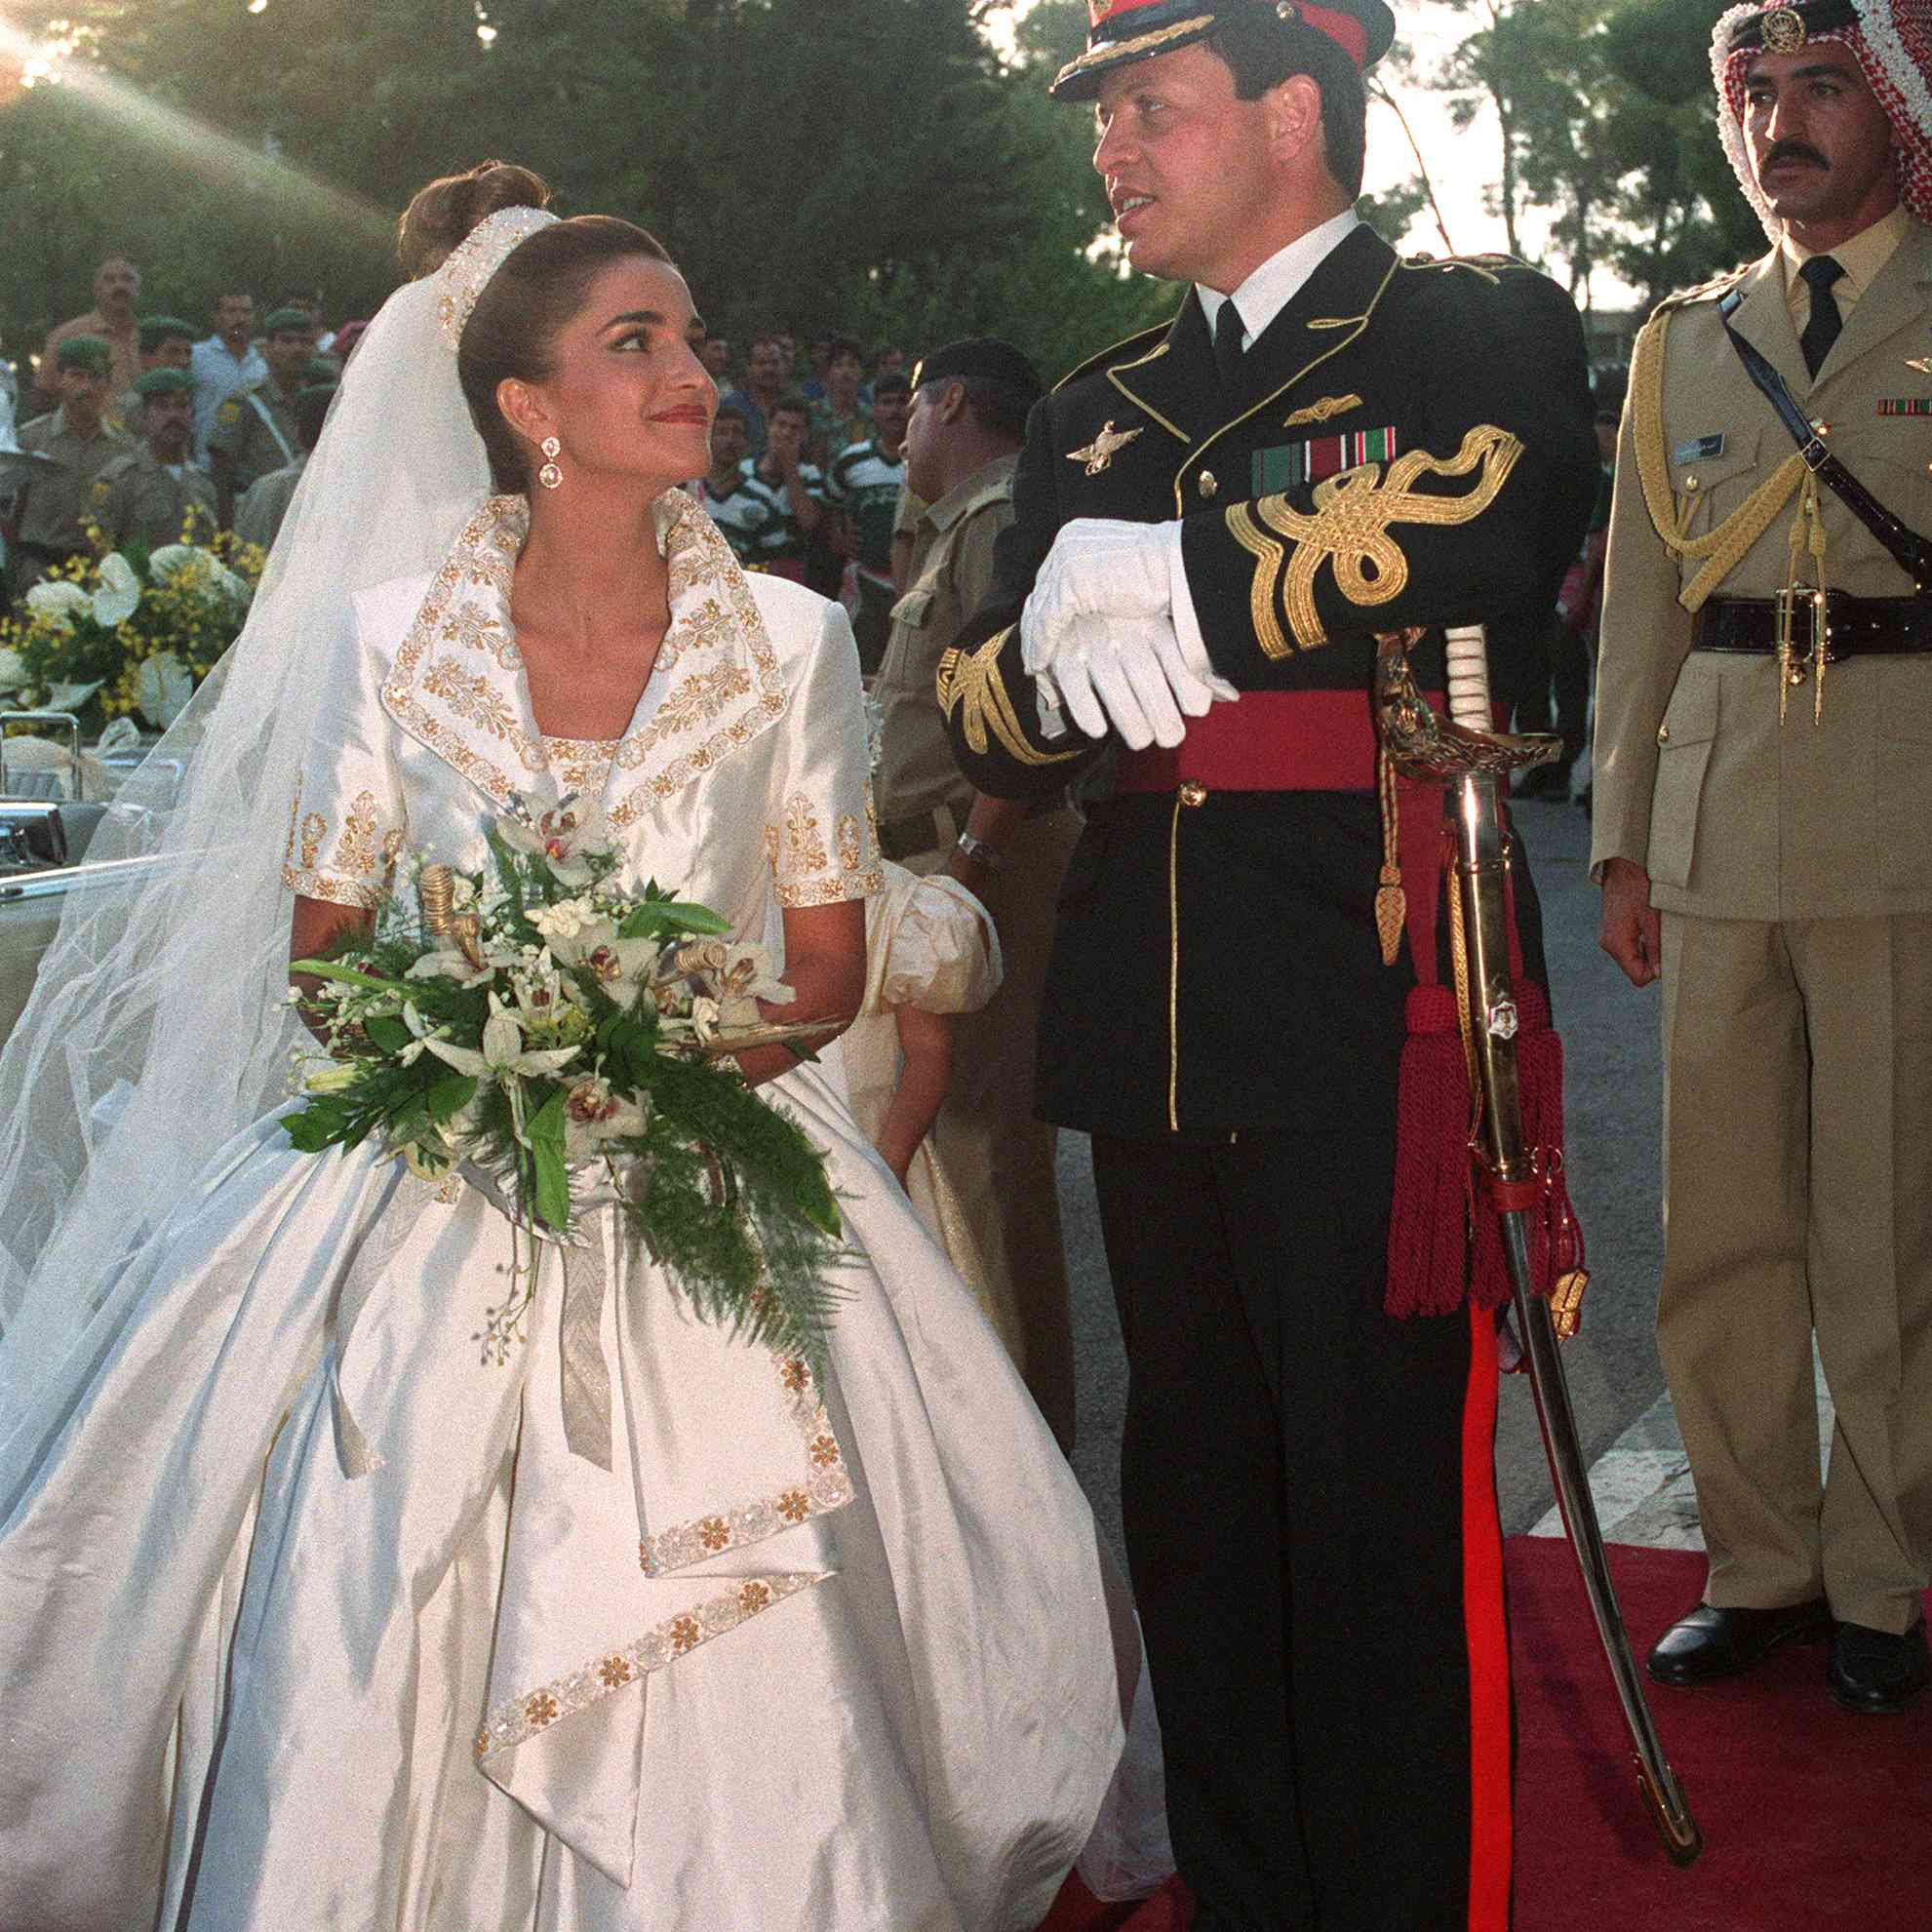 Prince Abdullah and Queen Rania on their wedding day